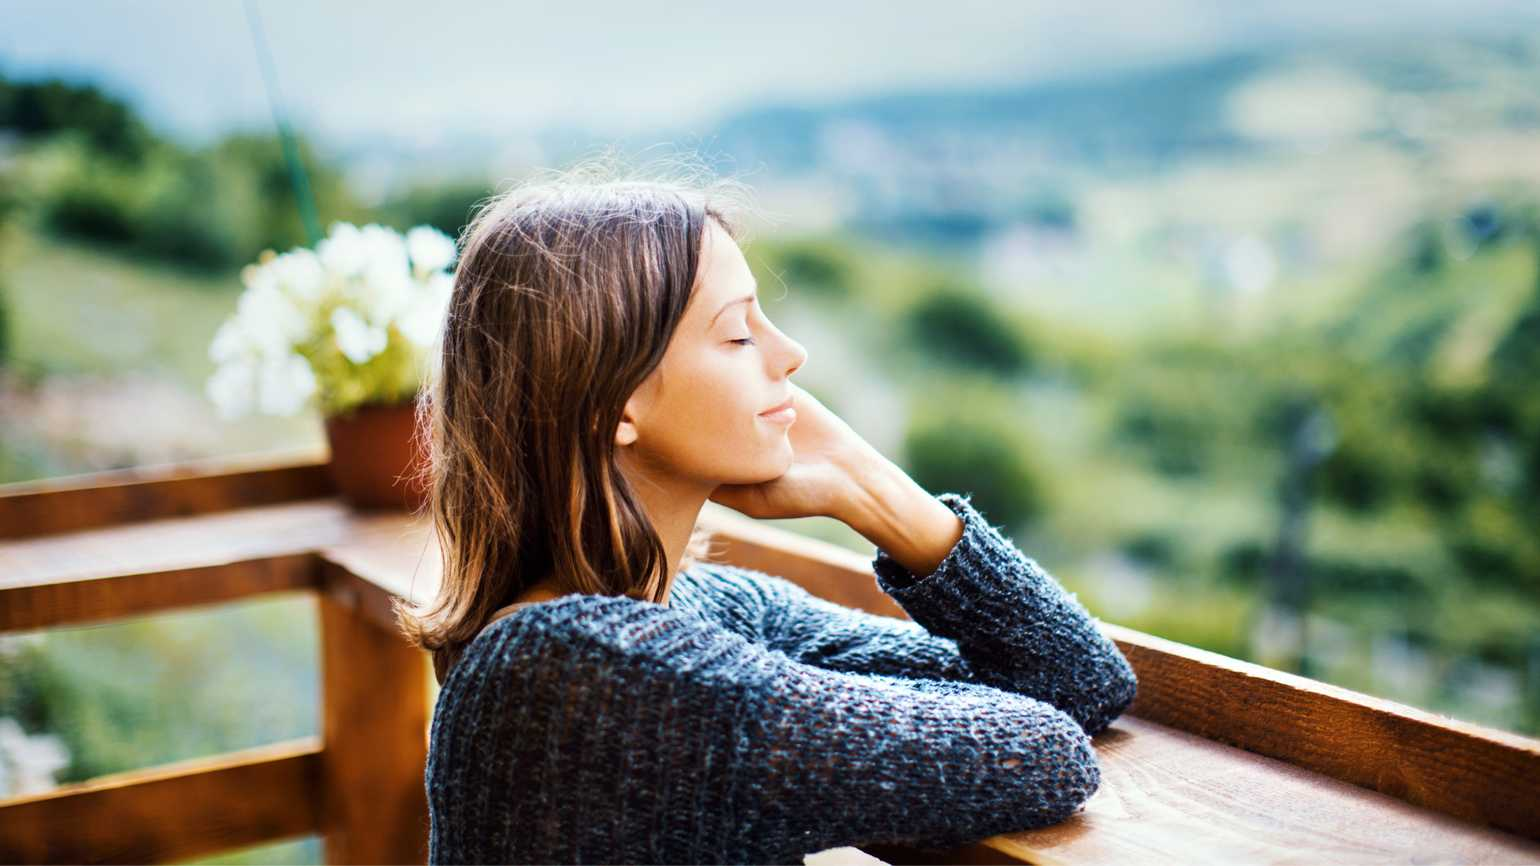 A woman in calm reflection outside.